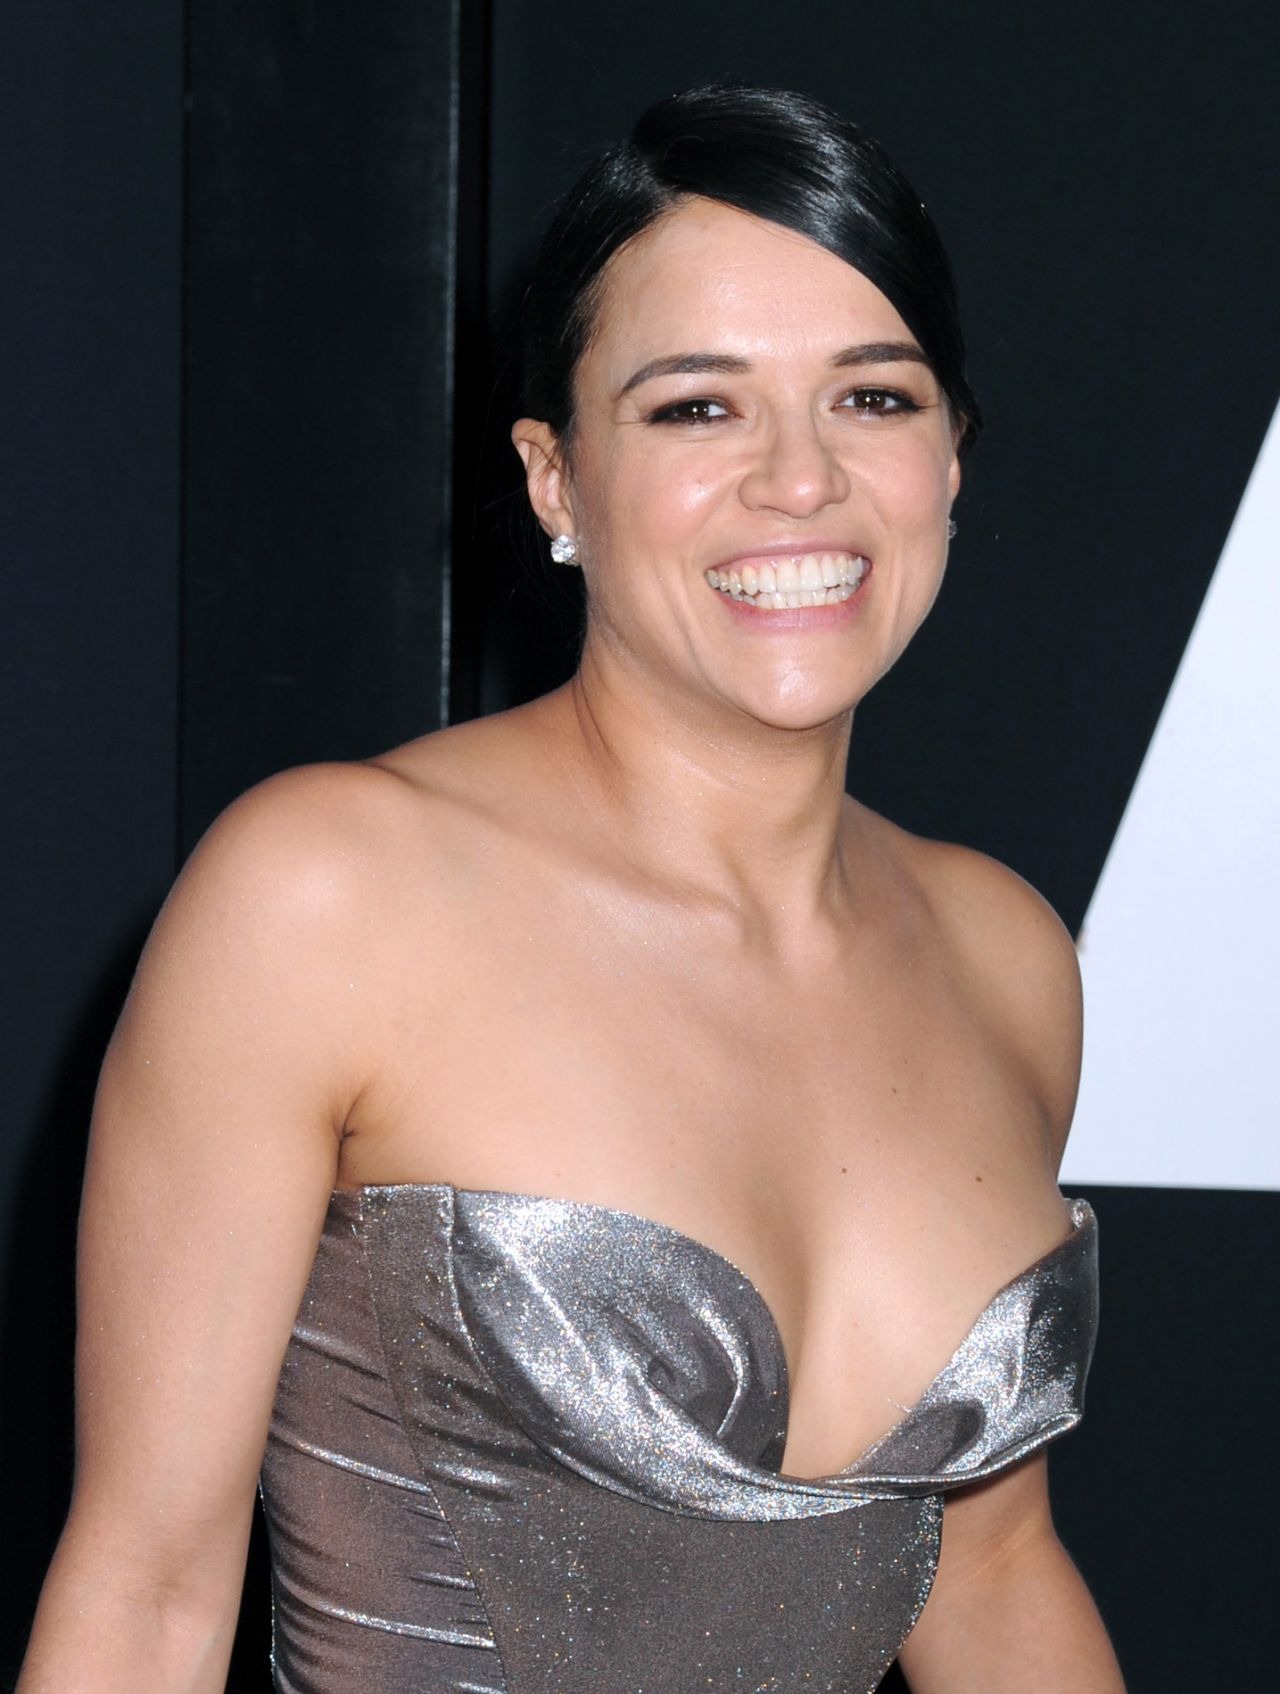 Who is michelle rodriguez dating now 6